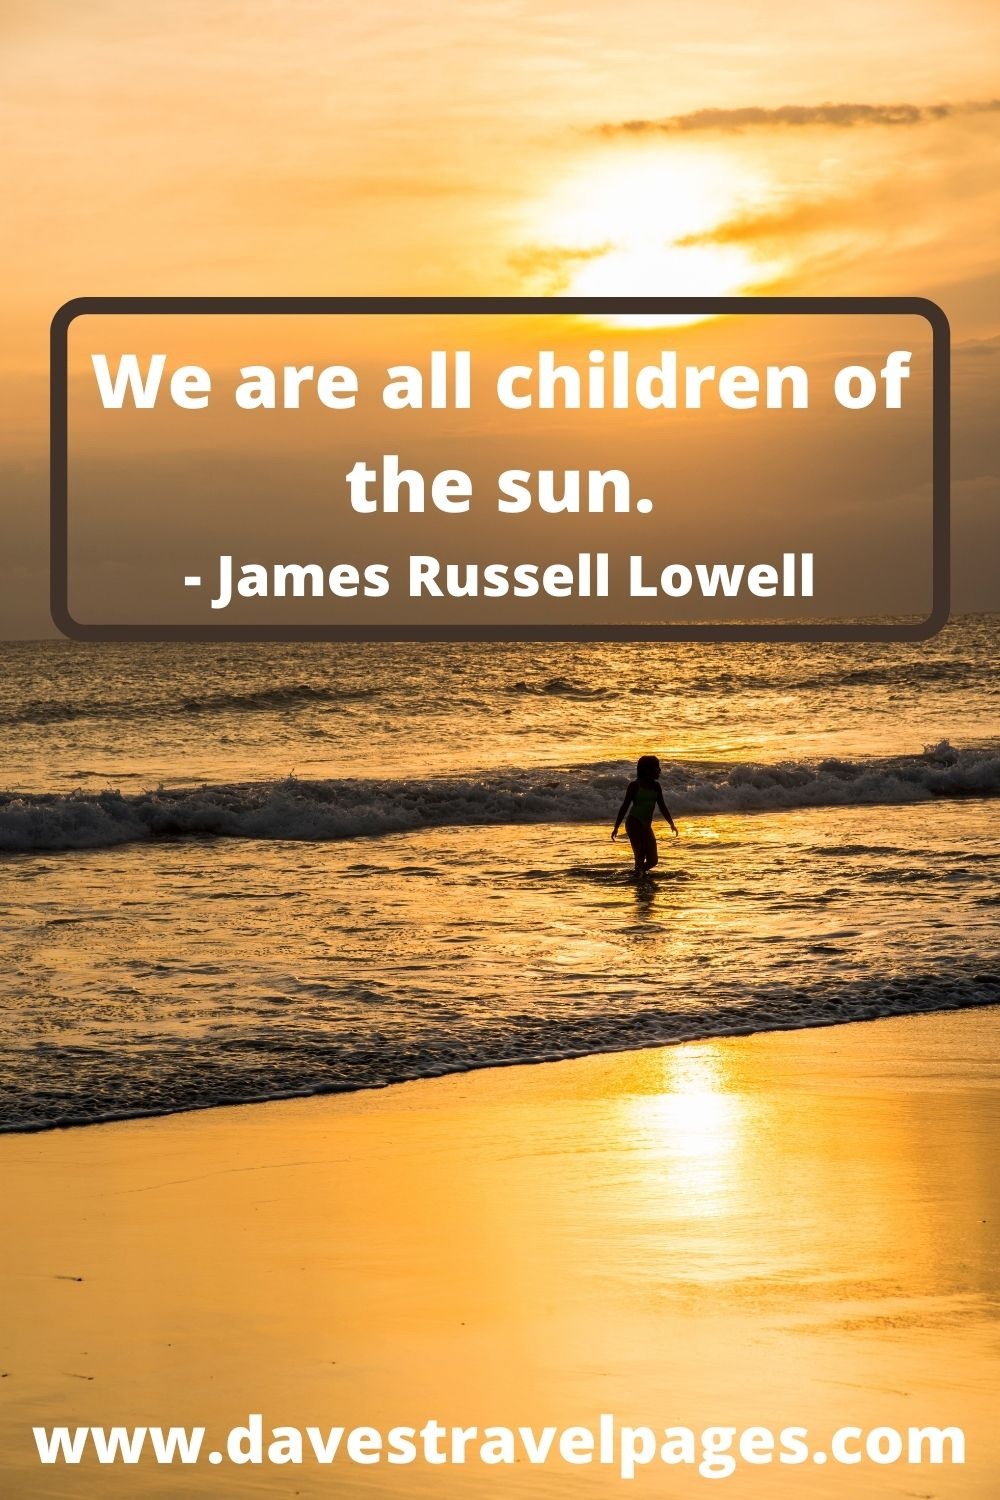 We are all children of the sun. - James Russell Lowell